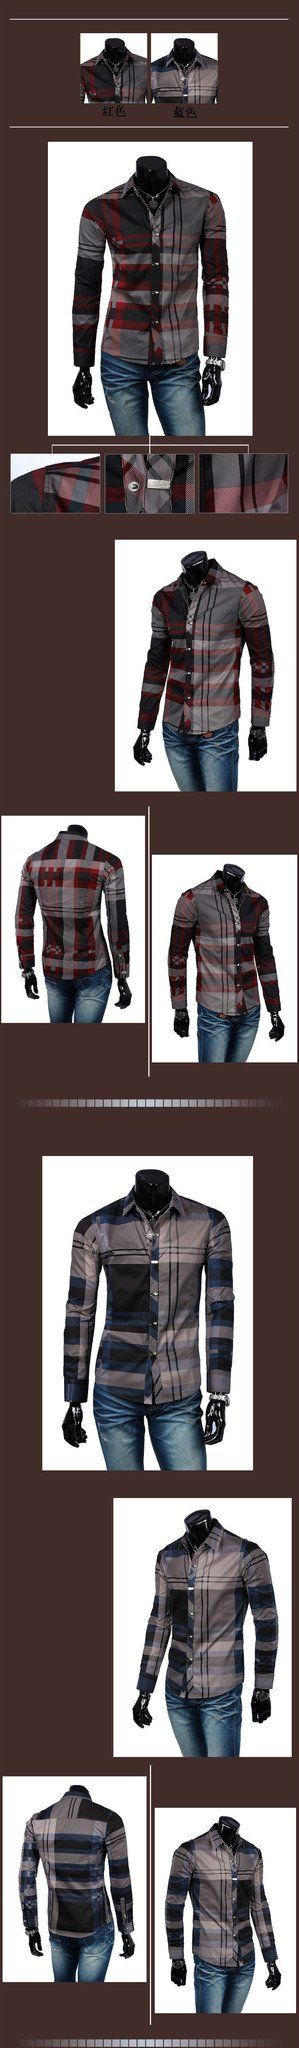 Men's Fashion Flannel - TrendSettingFashions